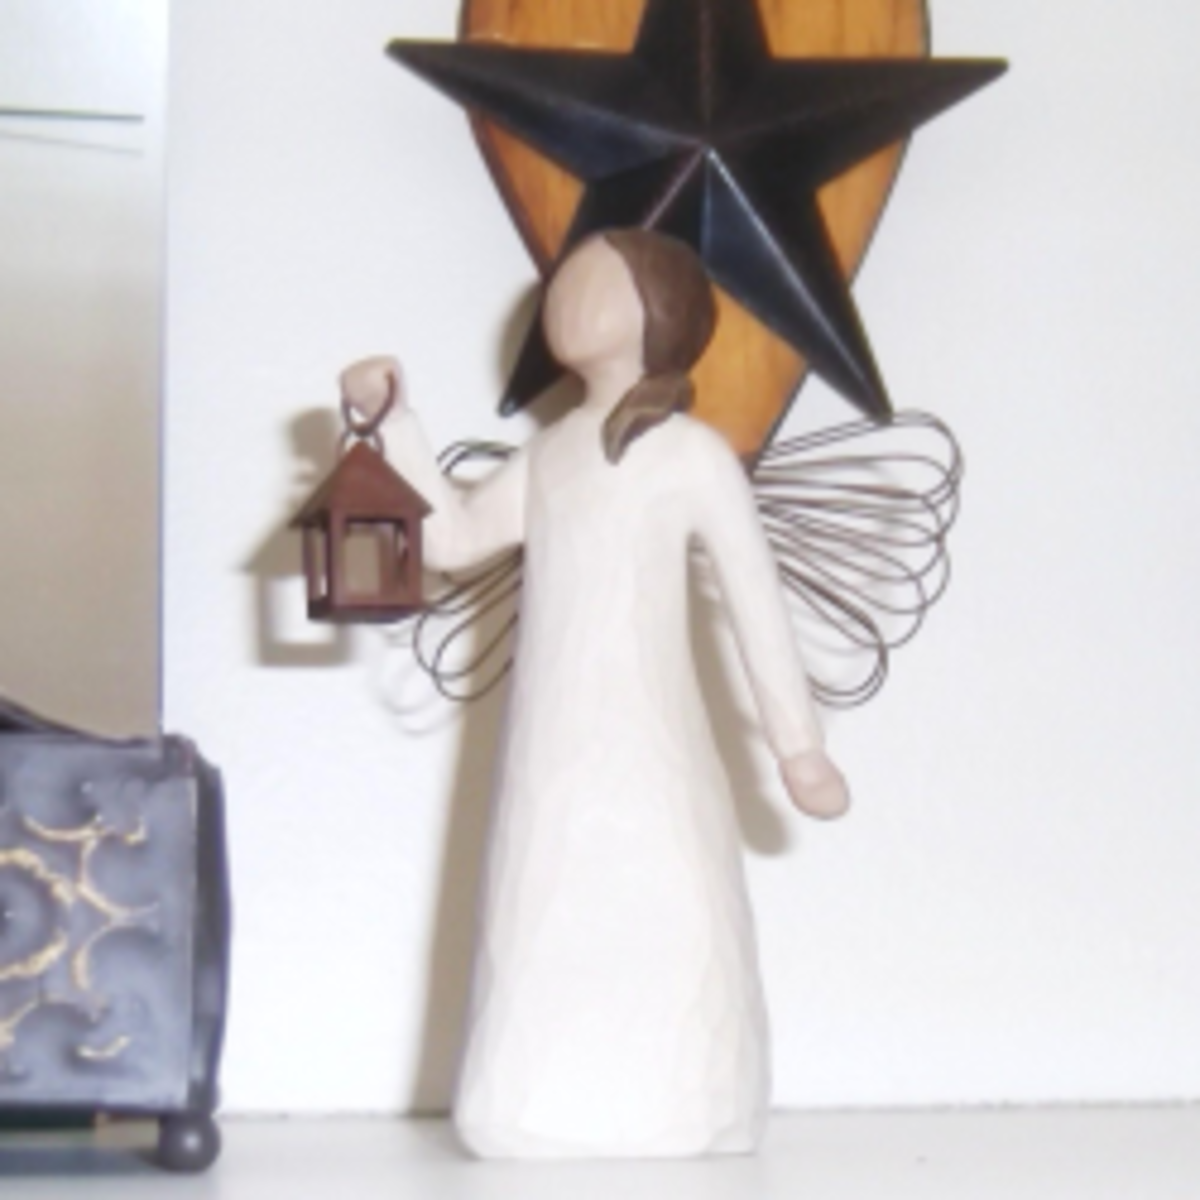 How to Display Willow Tree Angels and Figurines